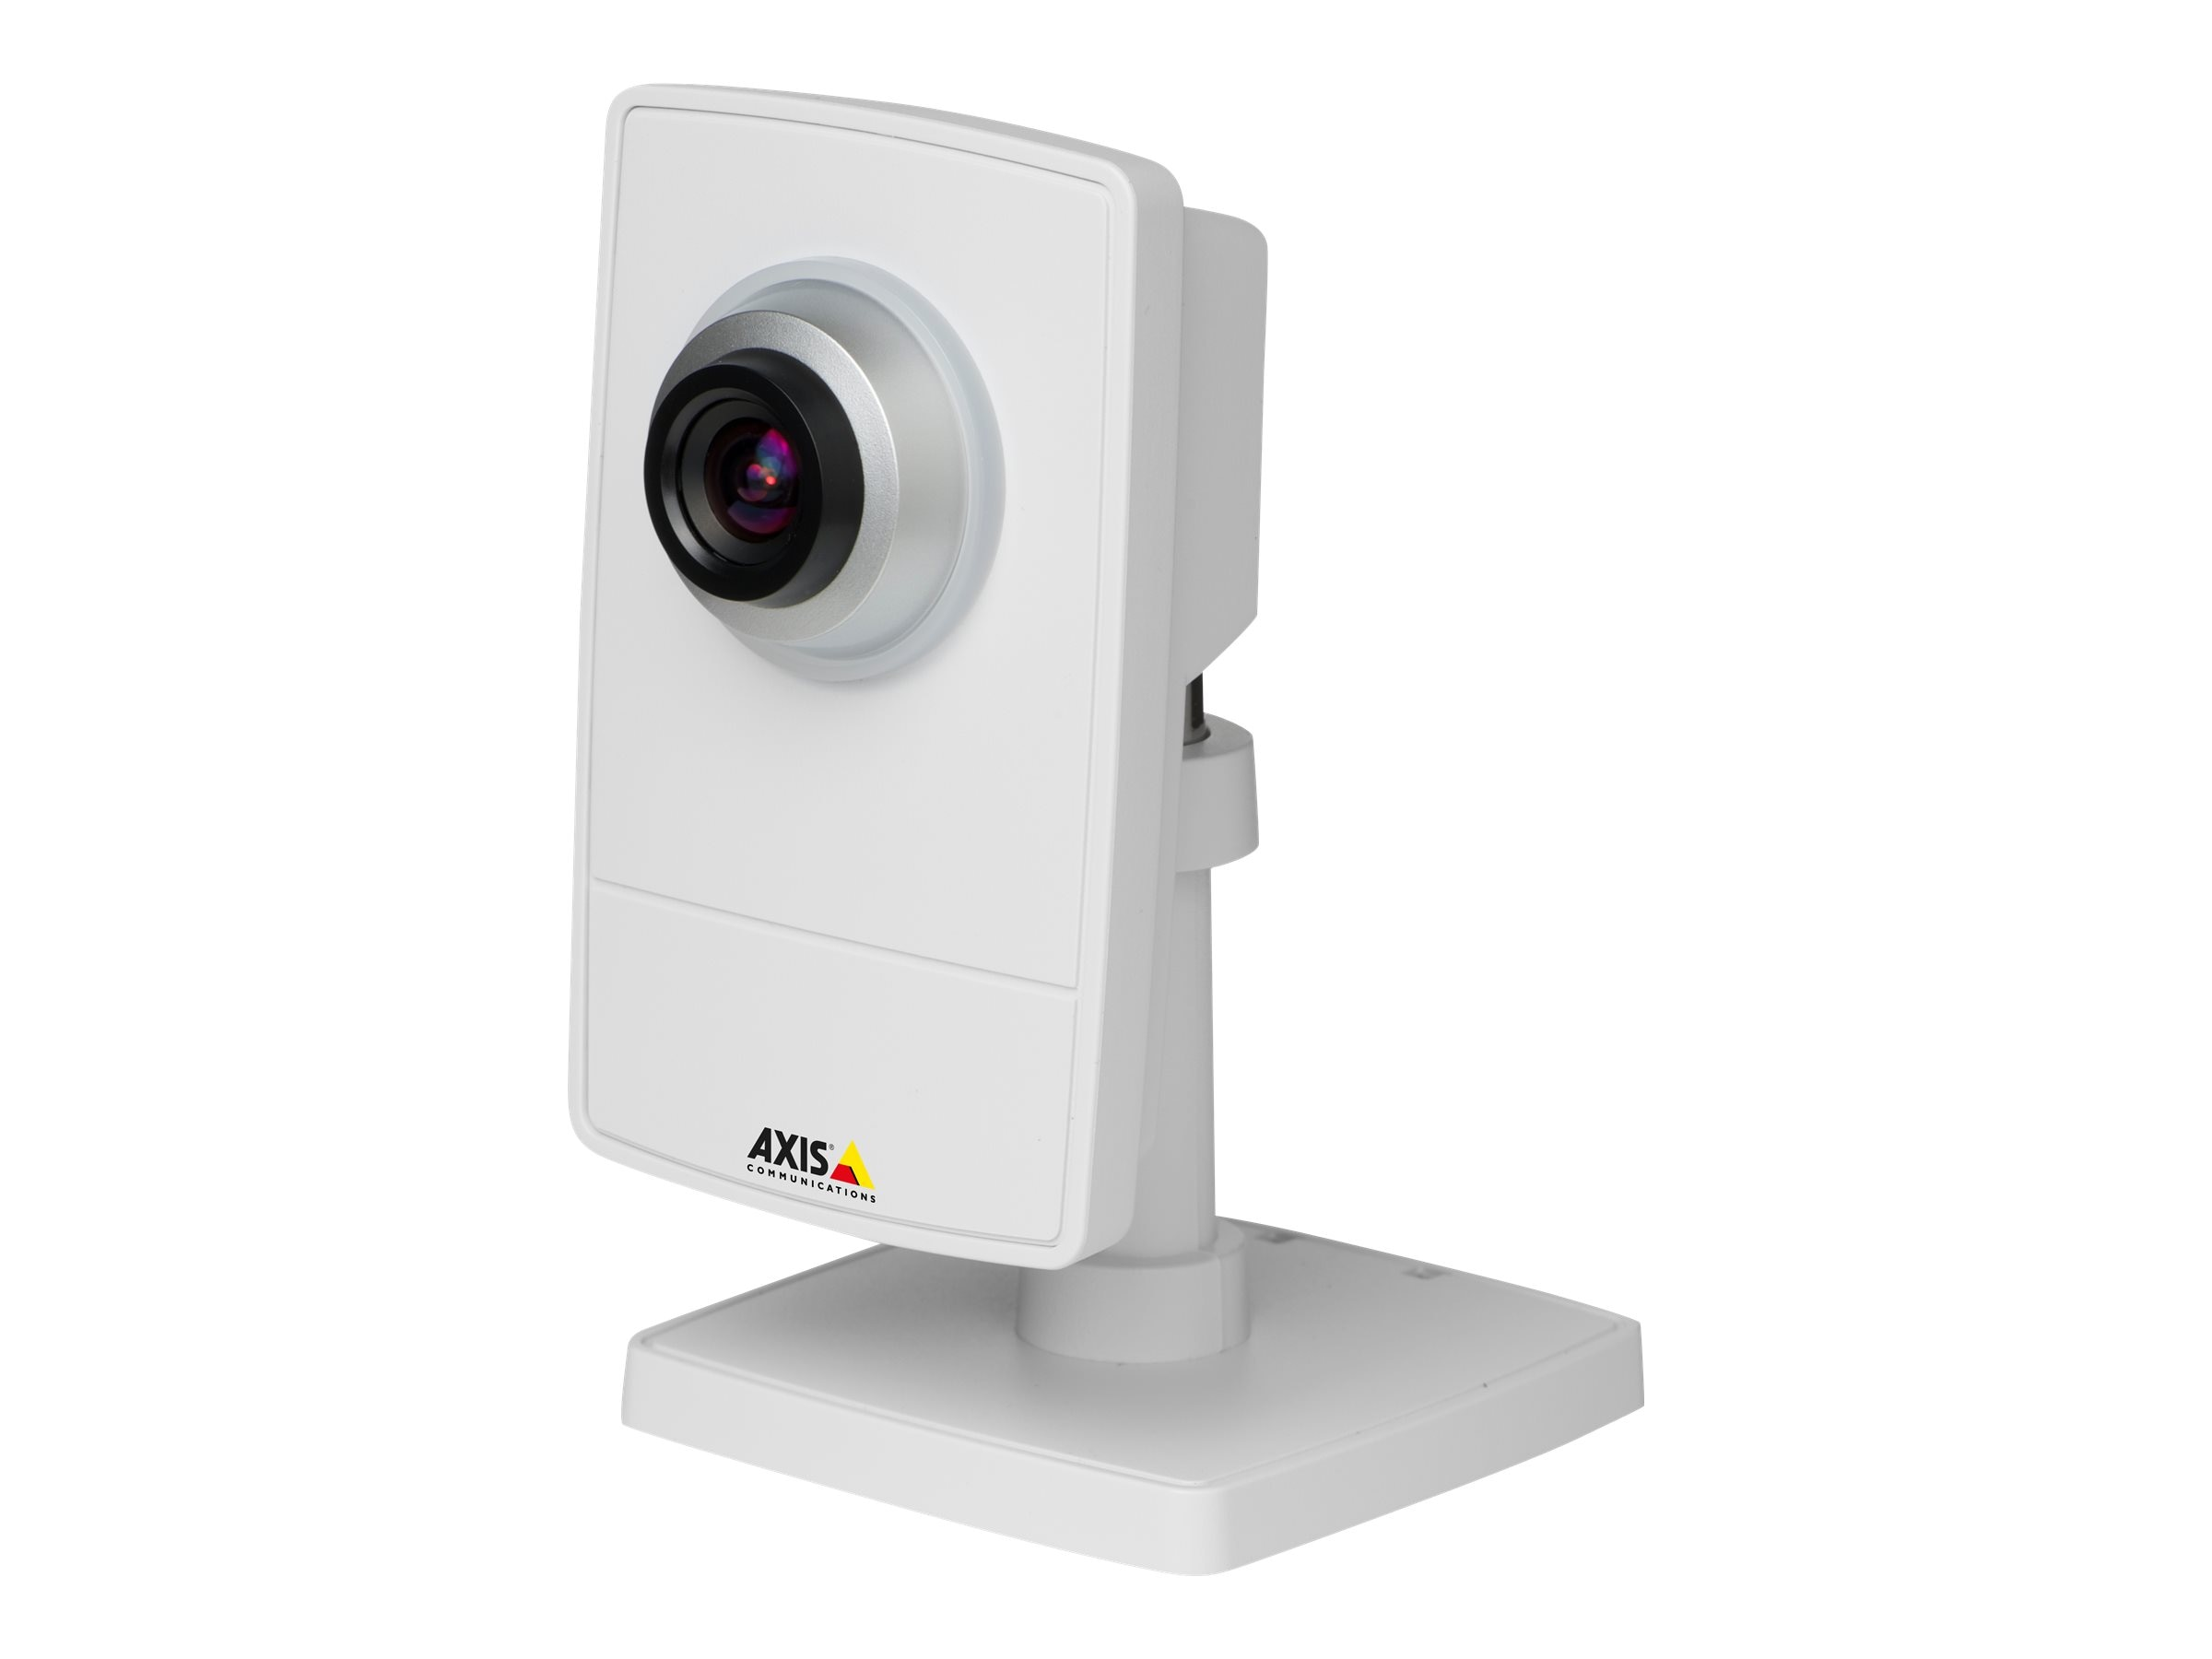 Axis M1004-W 1MP Network Camera, 720p, Wireless, 0554-004, 15752336, Cameras - Security